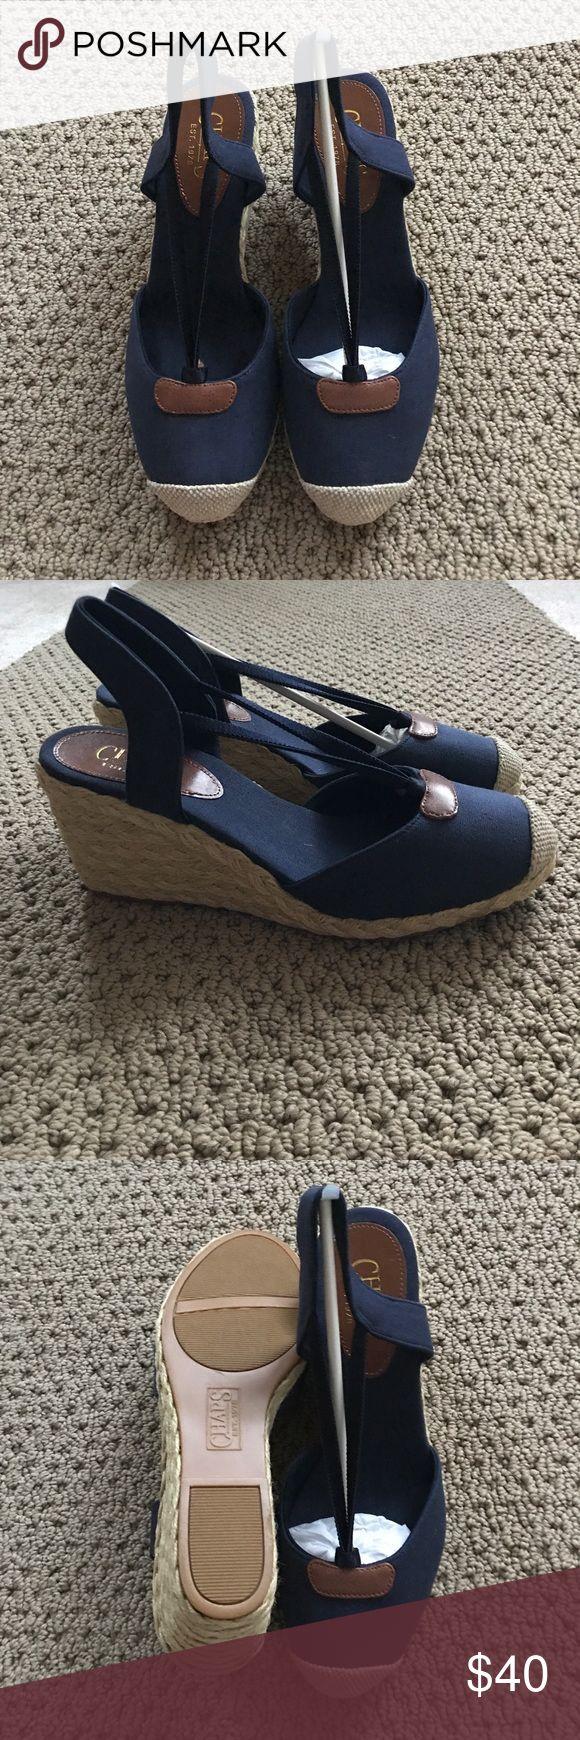 Champs wedges never worn Navy blue close toe canvas wedges champs Shoes Wedges